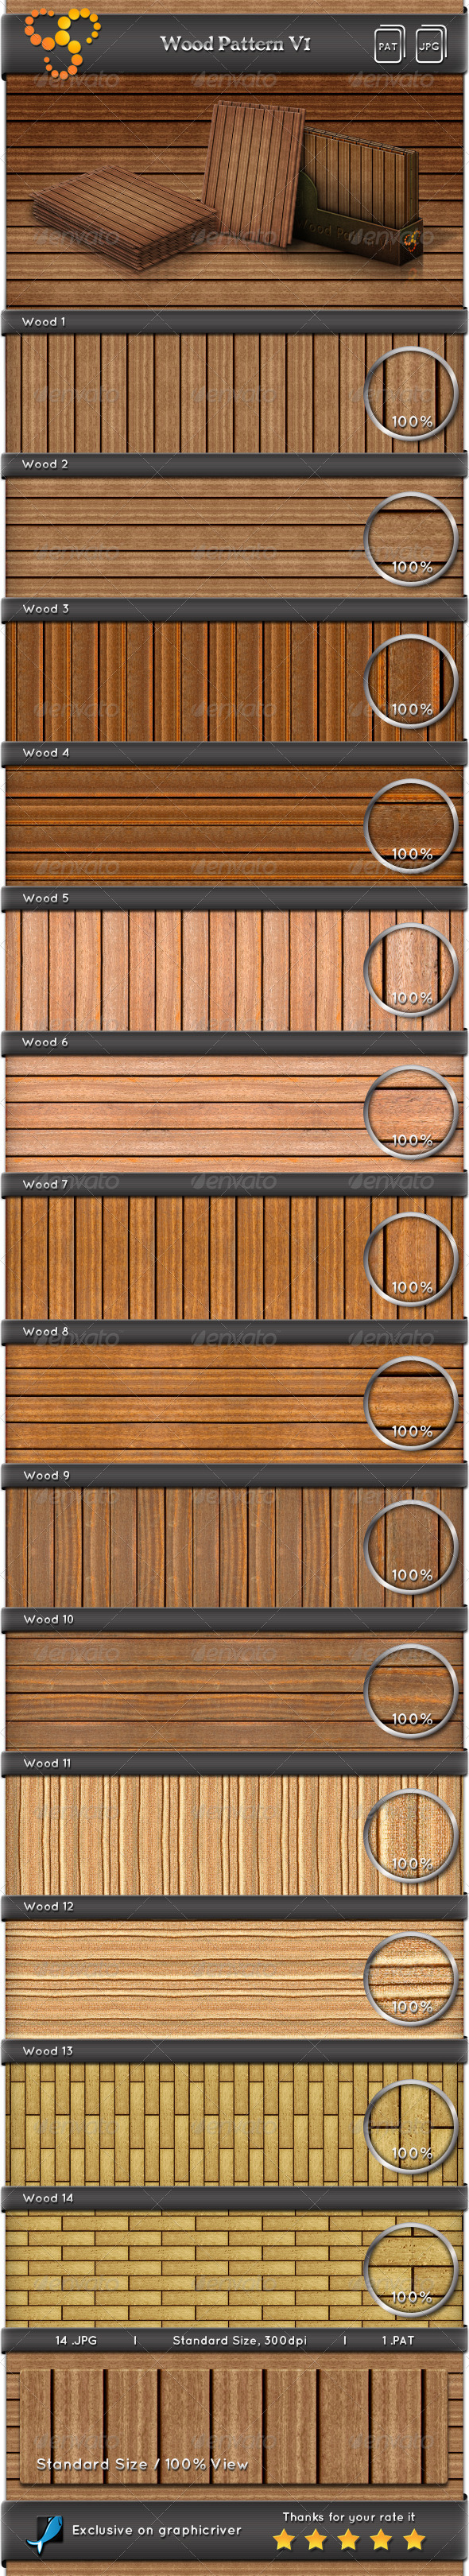 GraphicRiver Wood Pattern V1 6755434